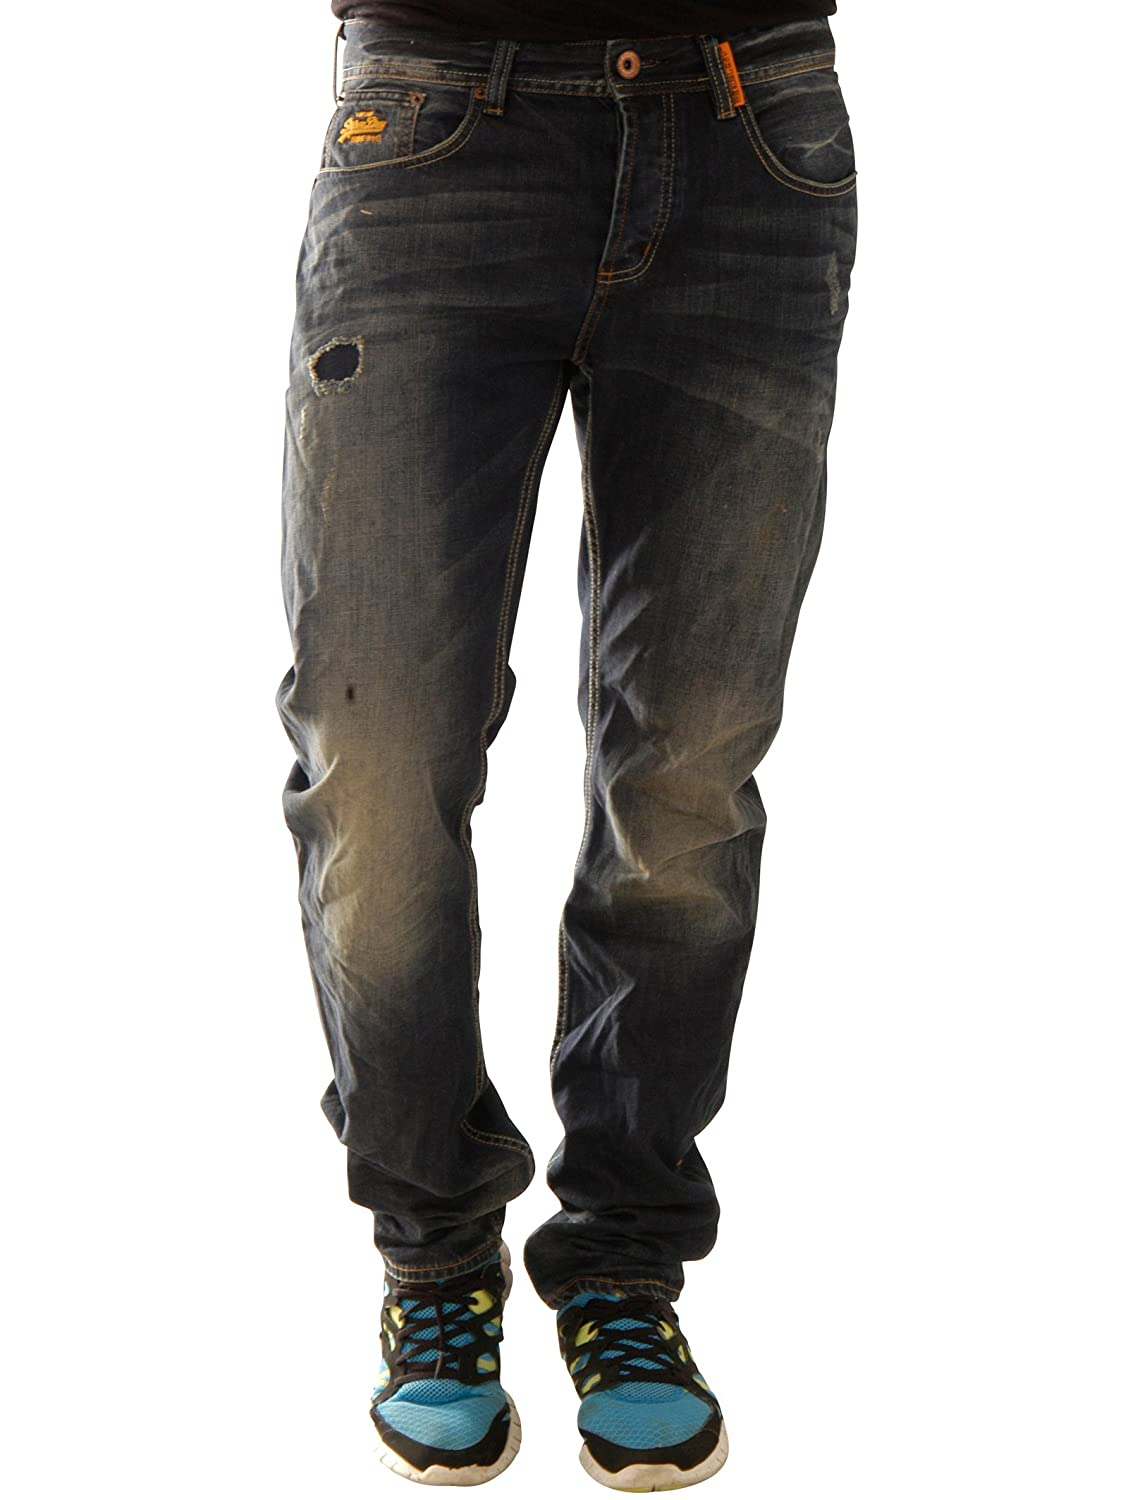 Superdry Herren Jeans Copperfill Loose M70kj001f1-Qcp